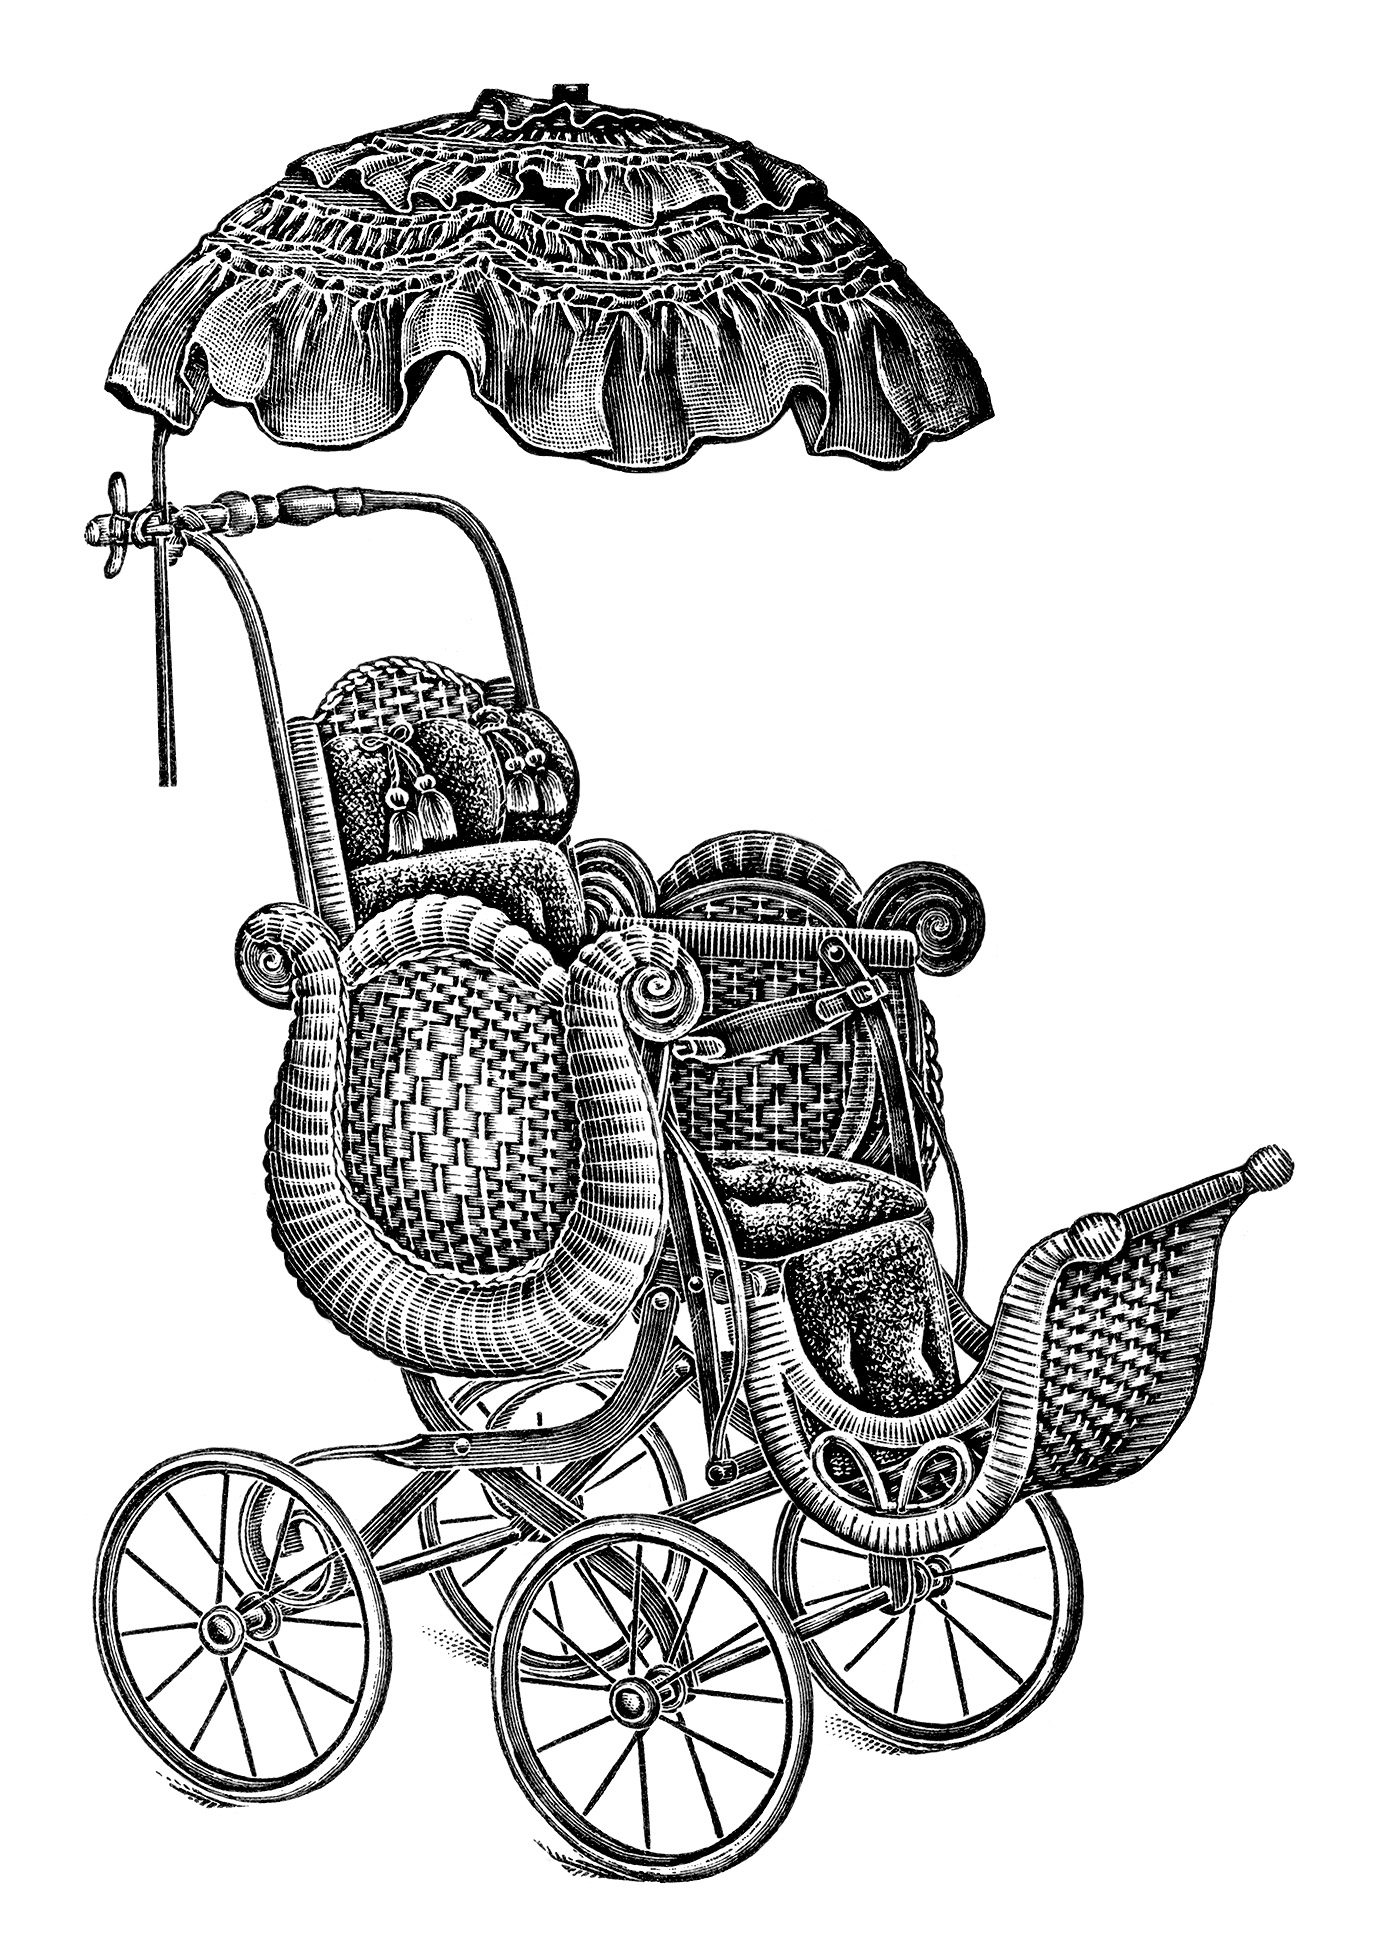 Baby Stroller Clipart Black And White Baby Strollers Free Vintage Clip Art Old Design Shop Blog